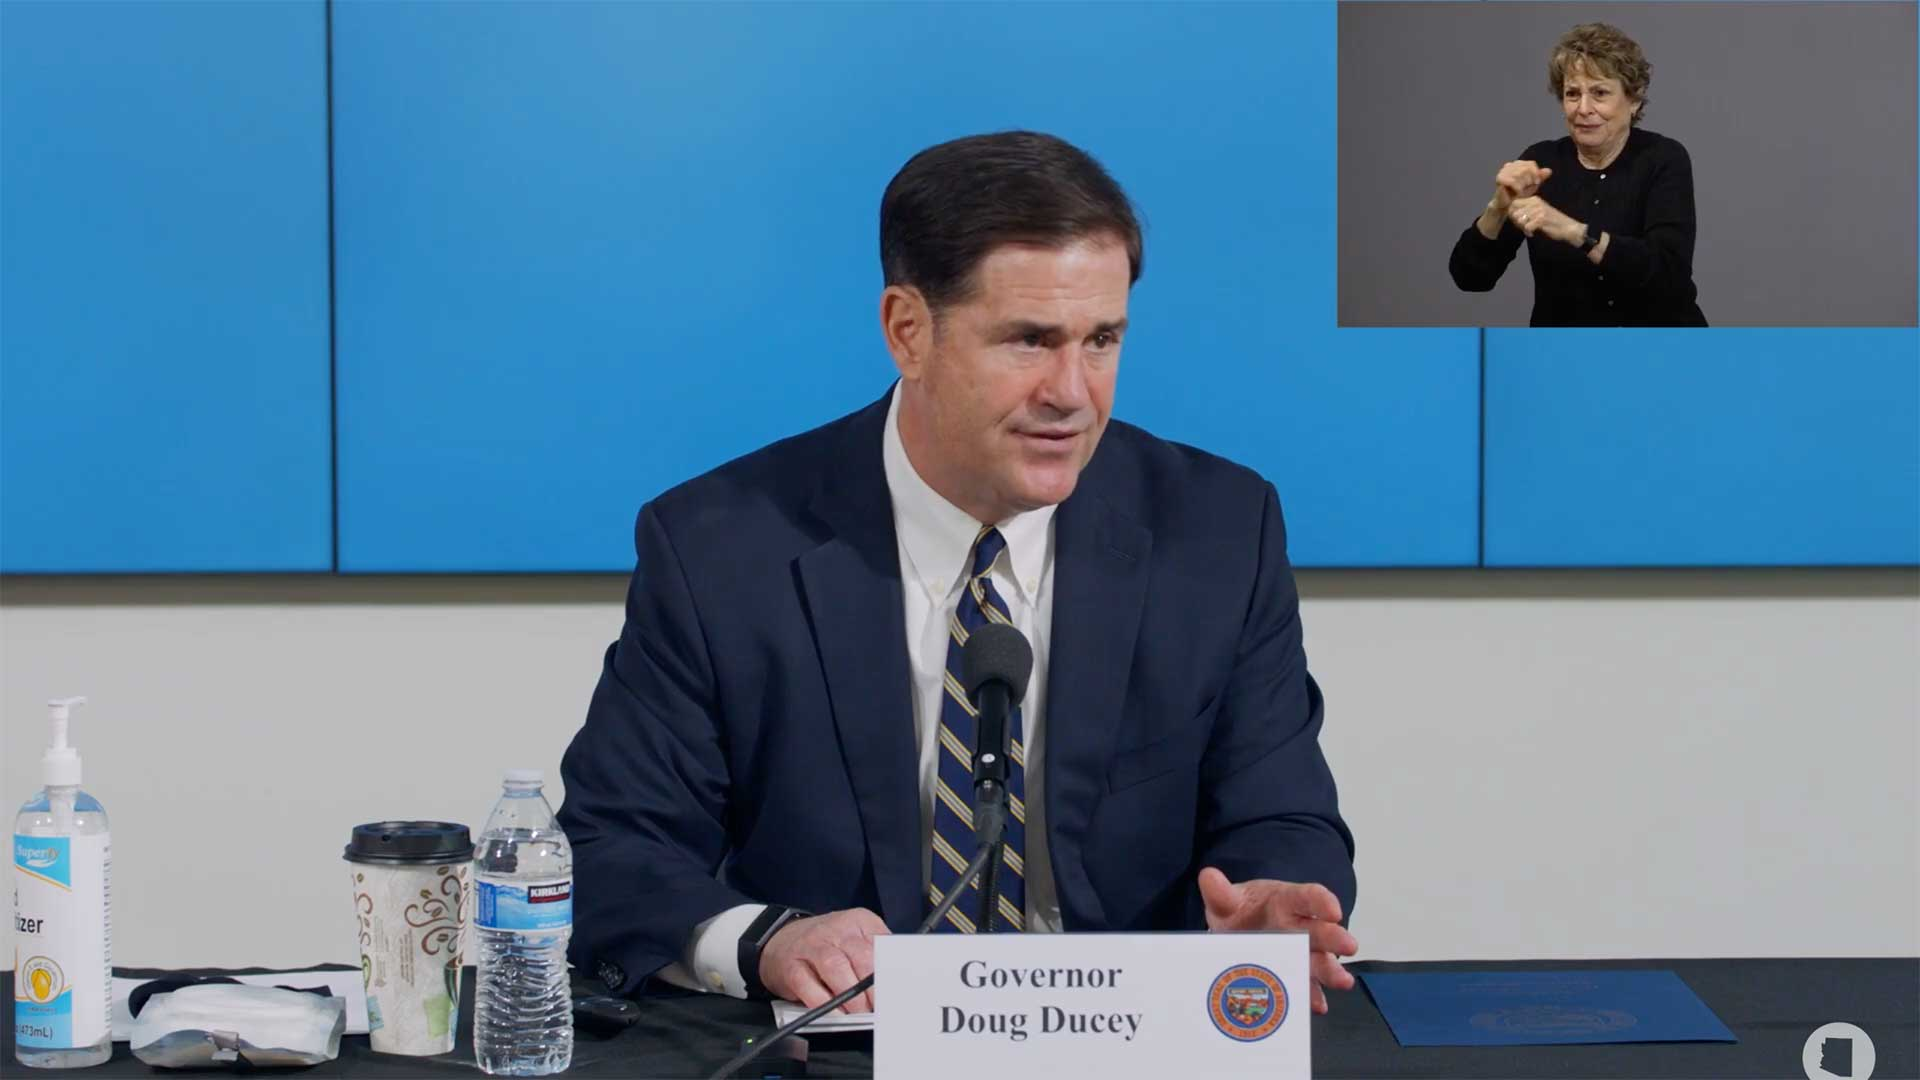 Arizona Gov. Doug Ducey delivers an address on the state's COVID-19 response, June 29.